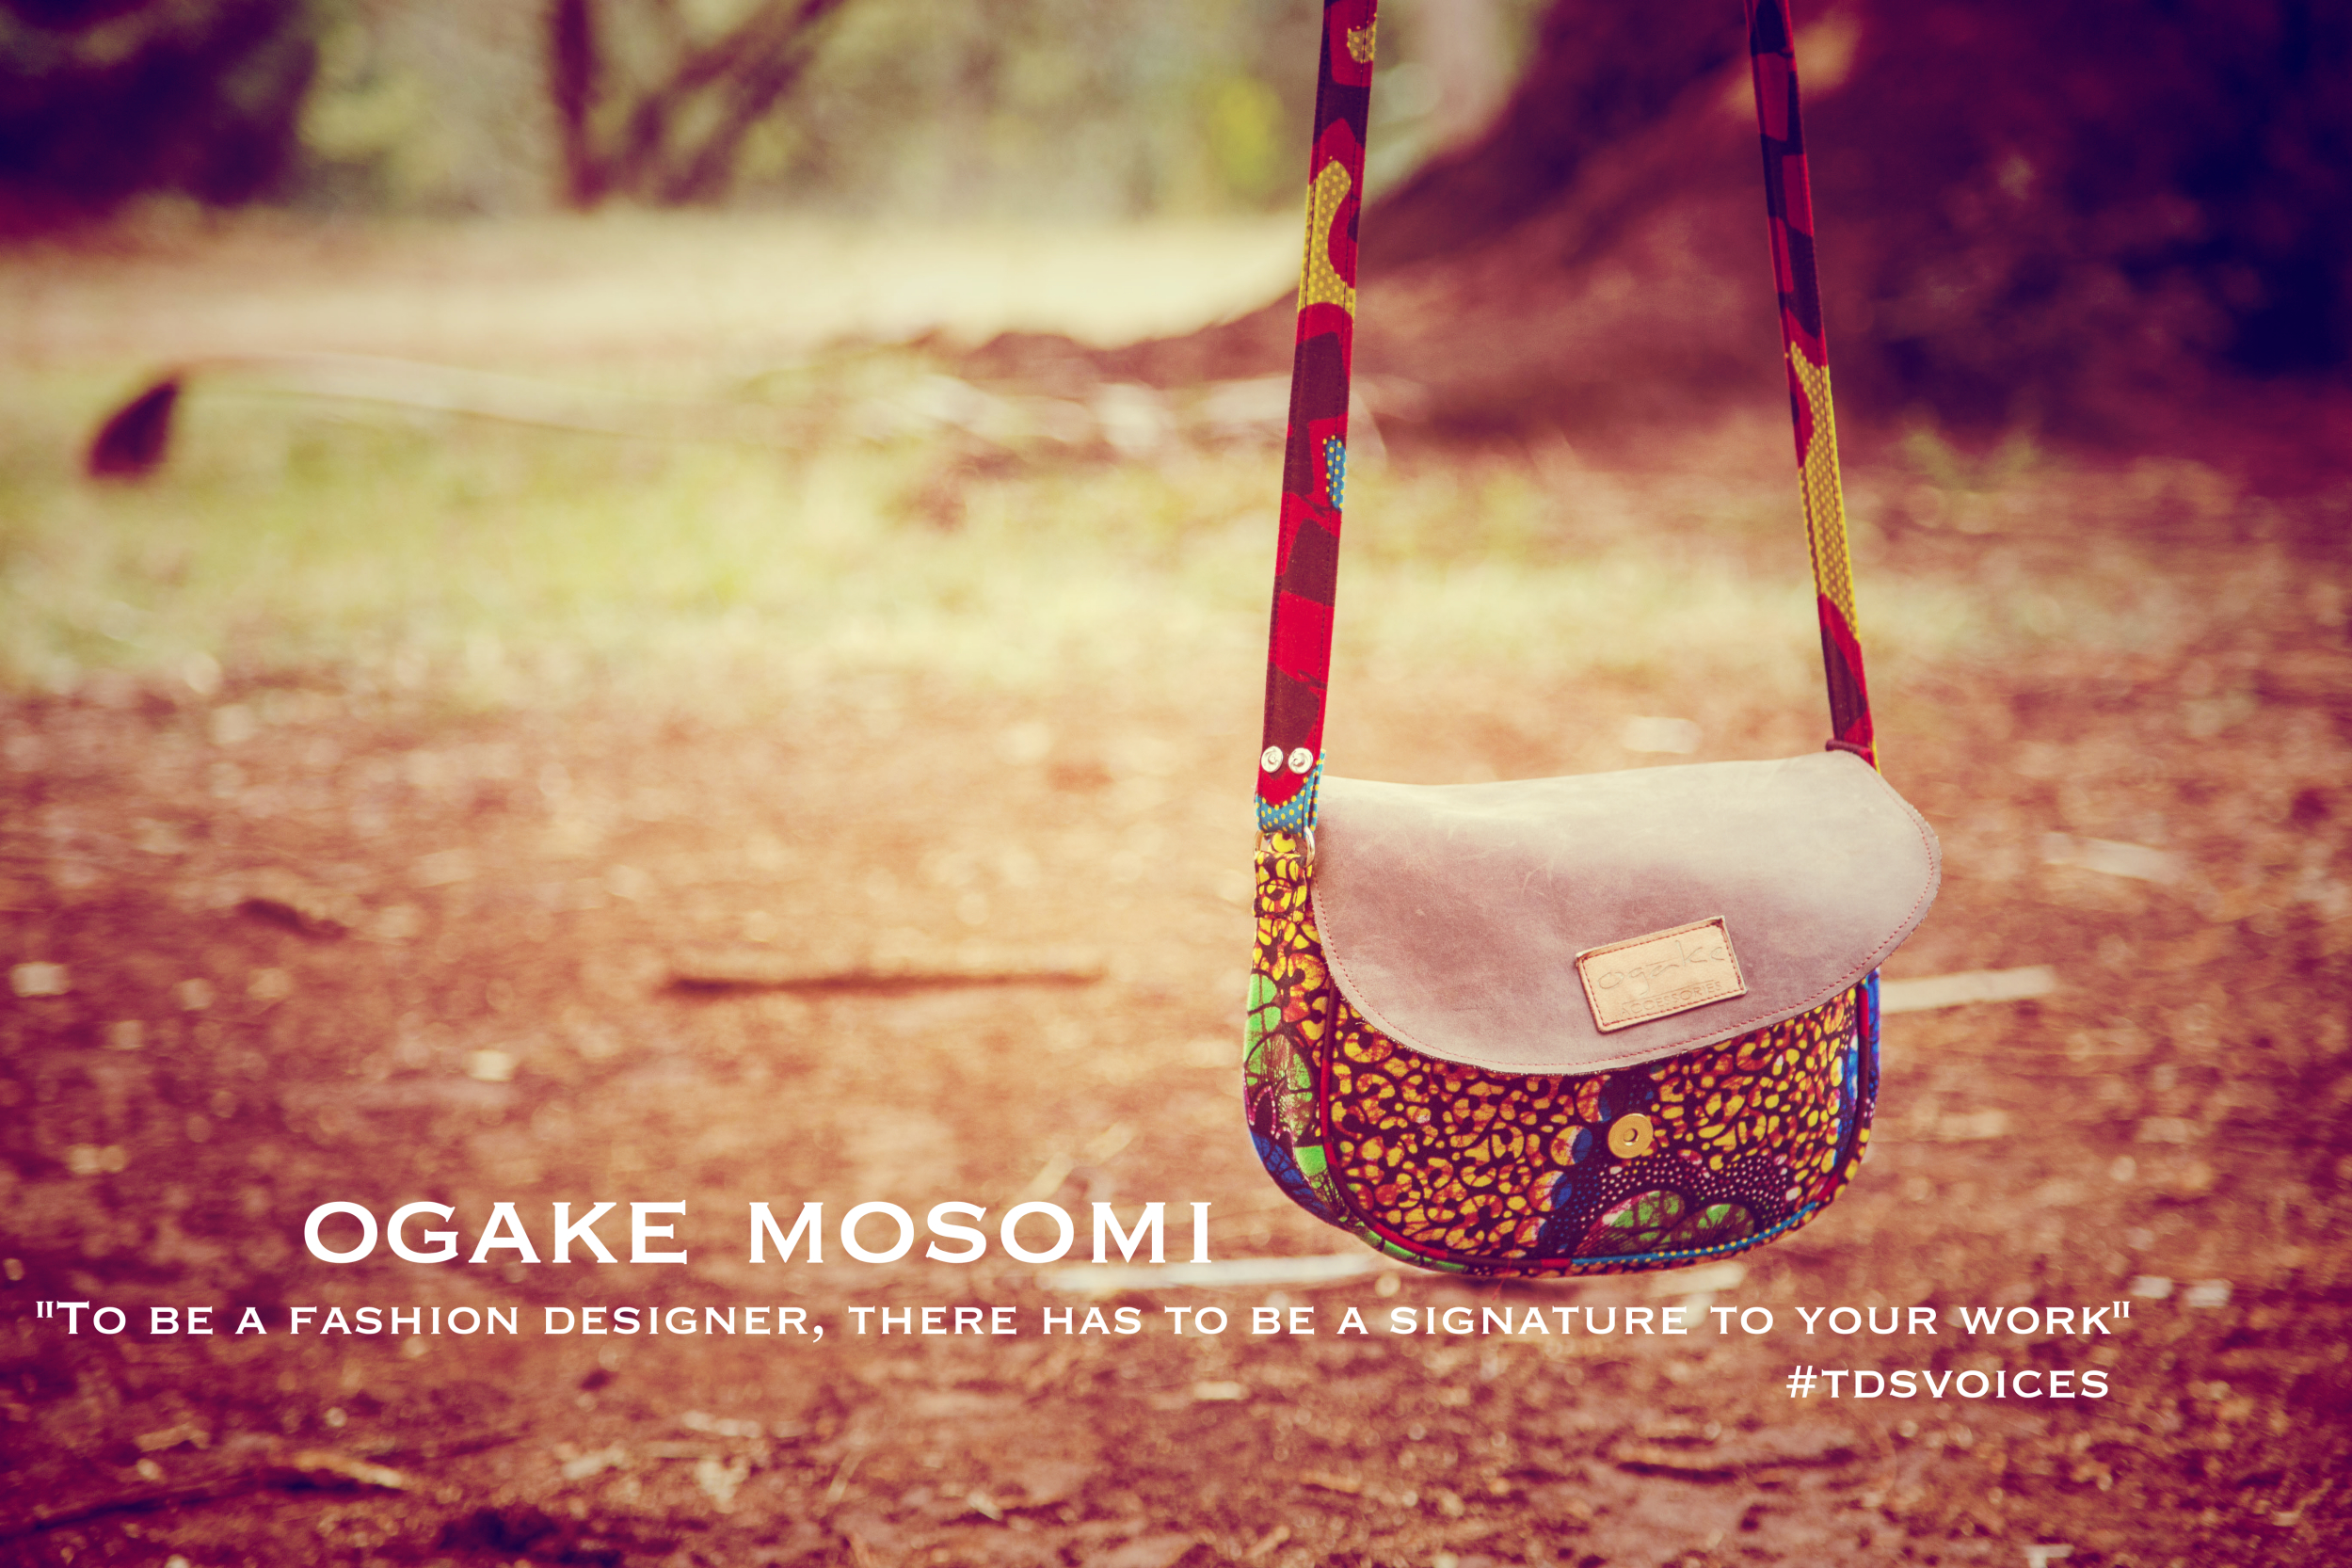 Ogake Mosomi and her fashion journey [Part I]